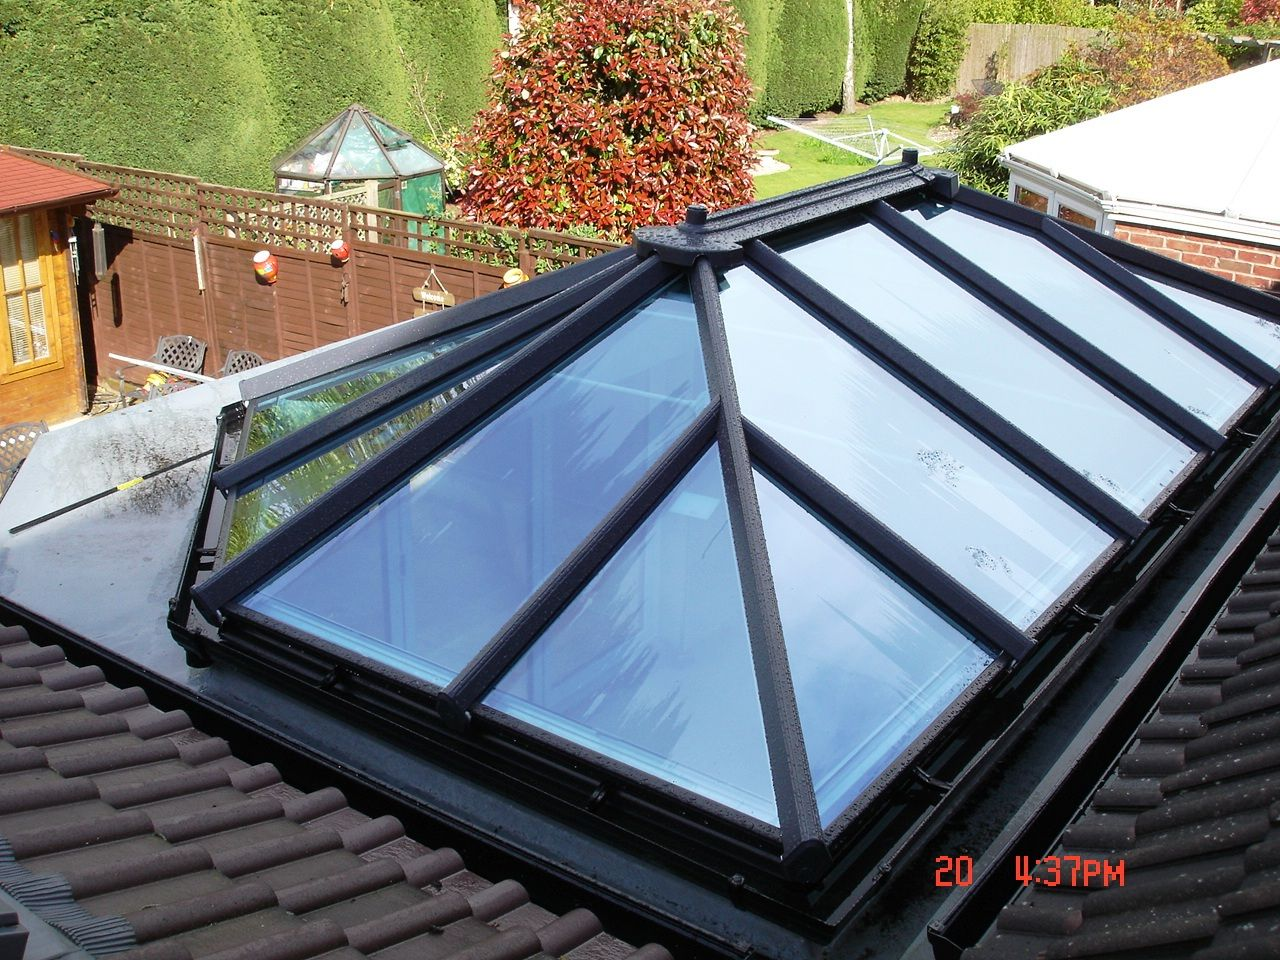 Flat extension roof idea flat roof skylights flat extension roof idea - An Orangery Style Glass Roof Installed To A Flat Roof Extension To Allow Plenty Of Light Roof Extensionextension Ideasroof